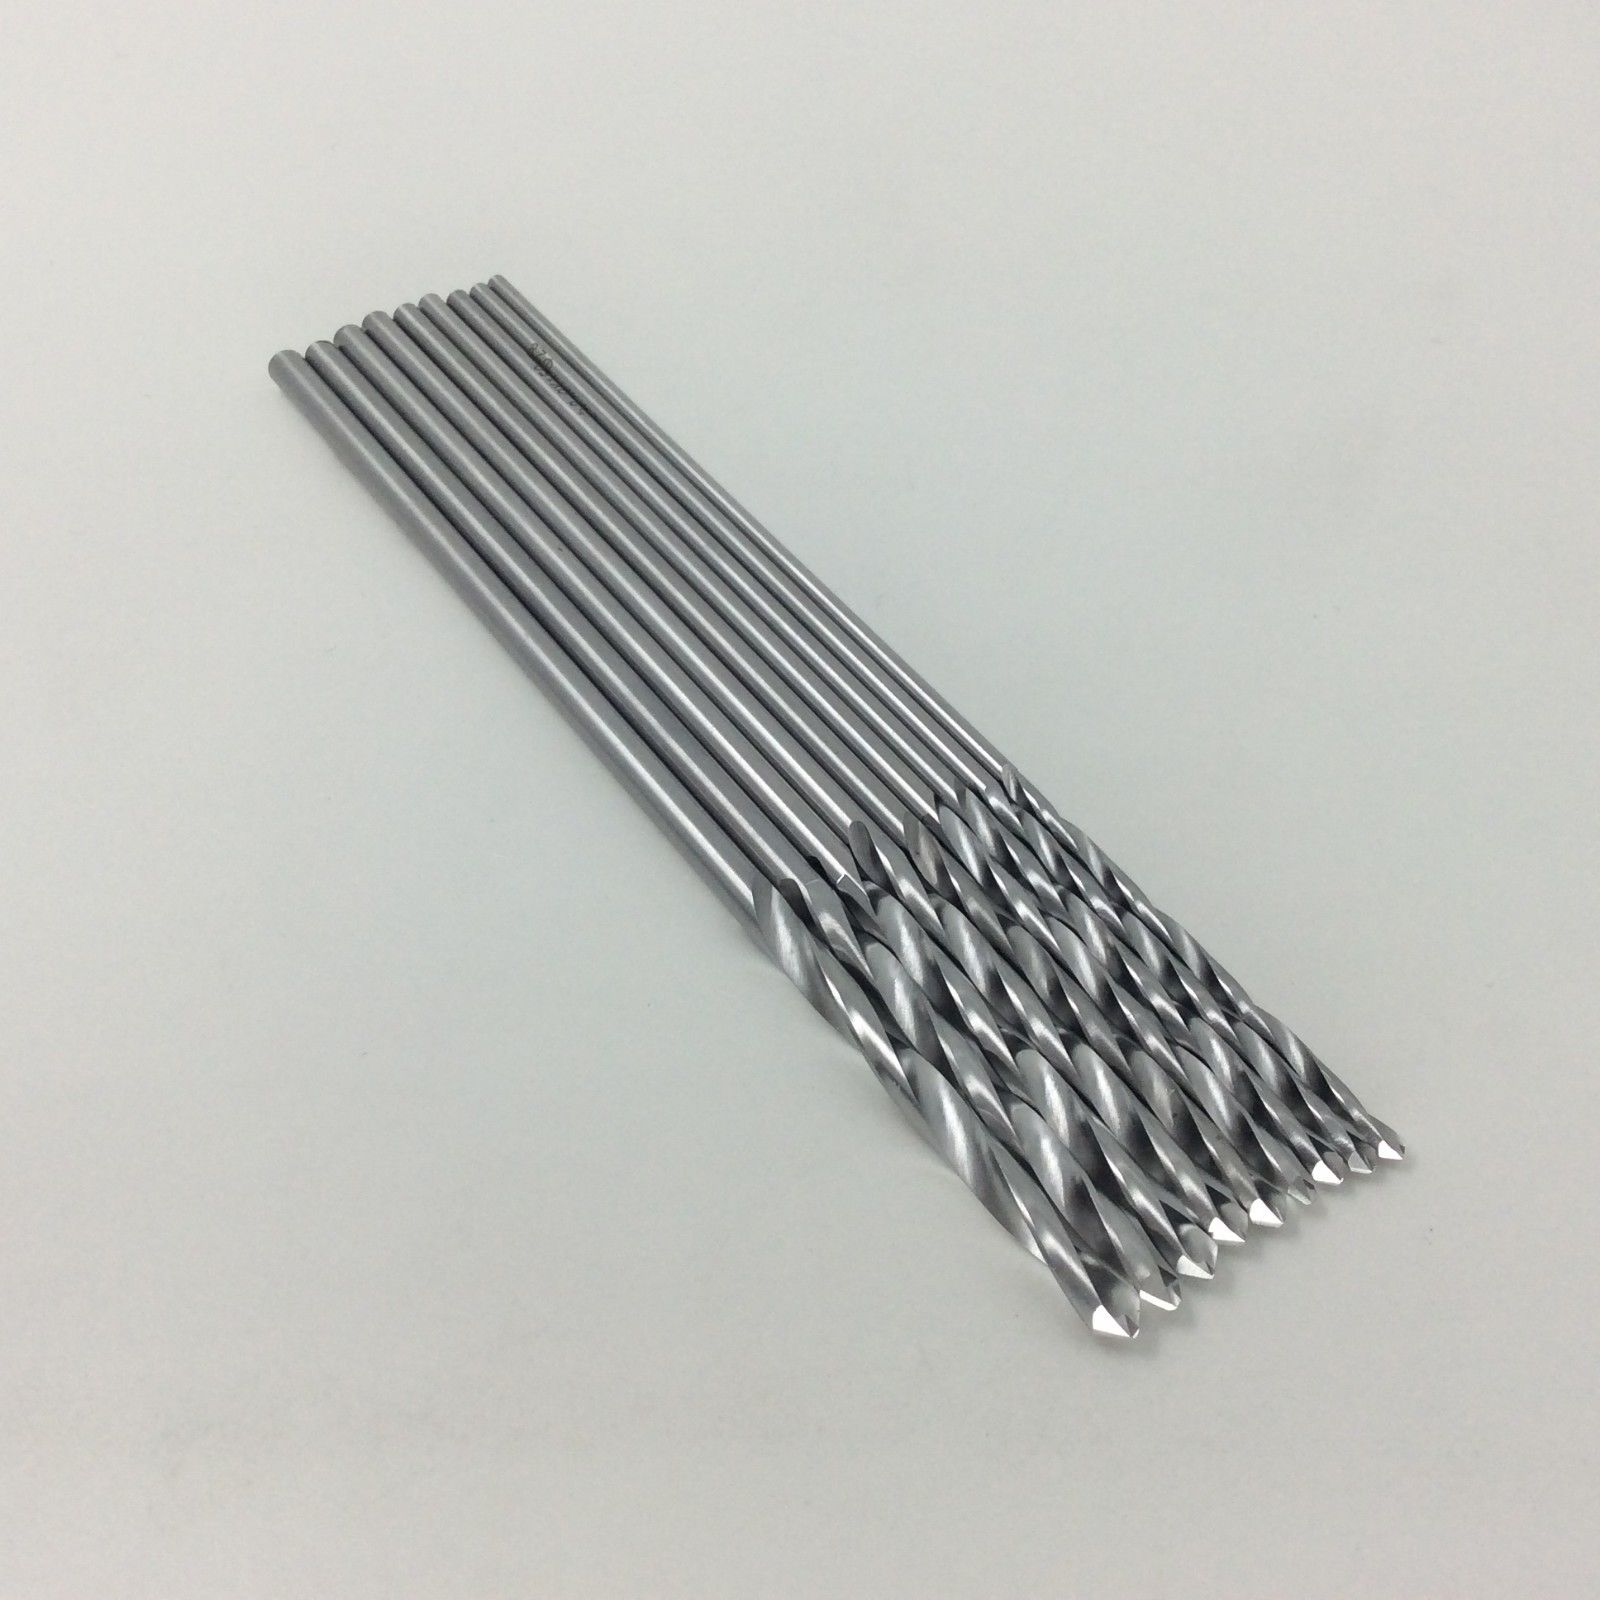 Купить с кэшбэком 9pcs 150mm stainless steel bits Veterinary orthopedics Instrument